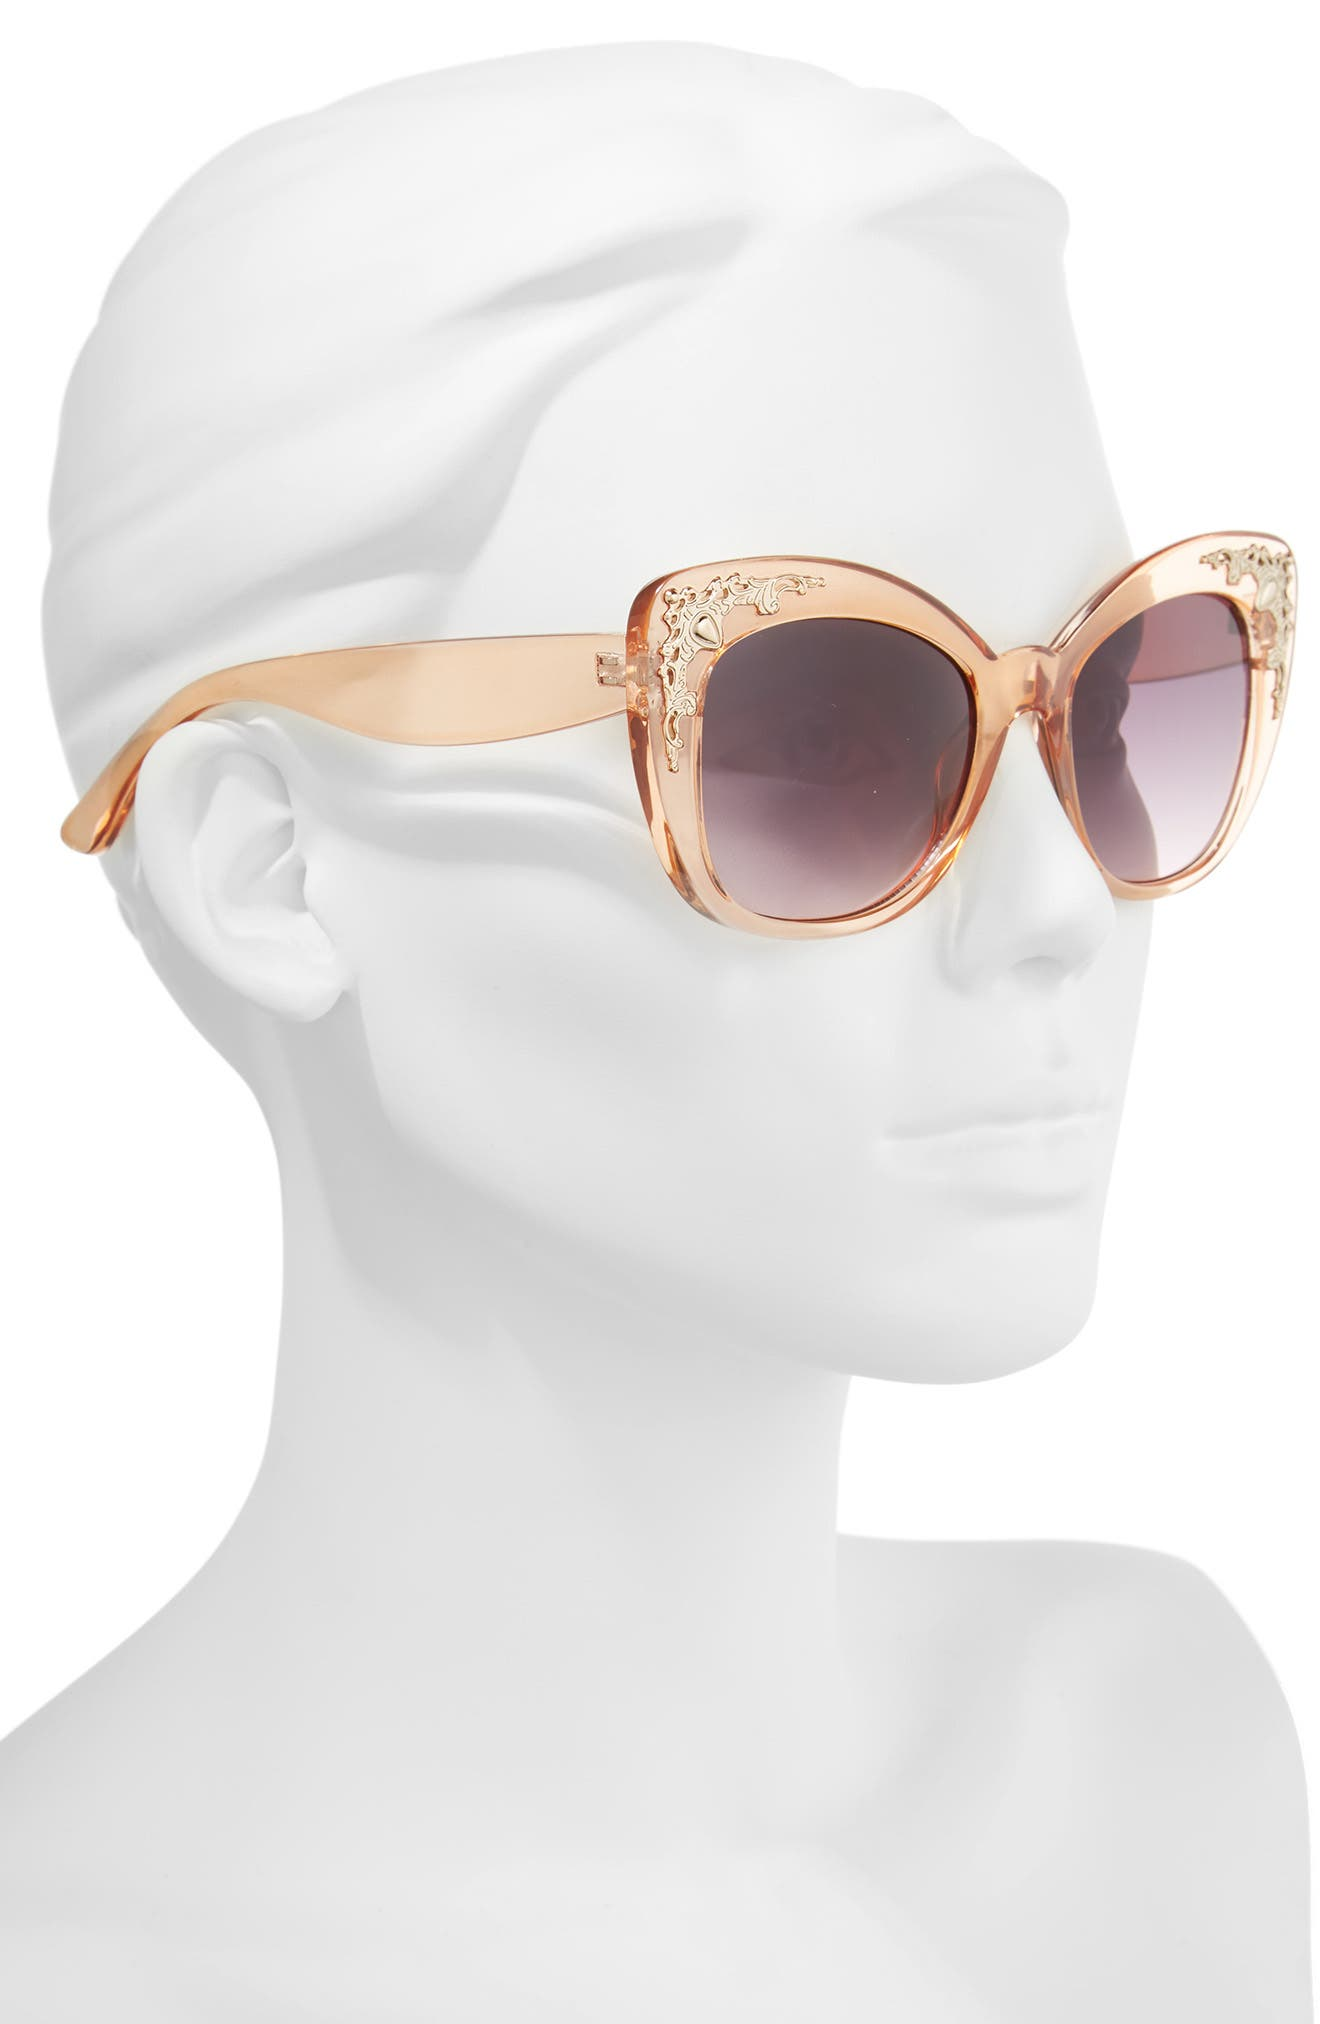 54mm Embellished Cat Eye Sunglasses,                             Alternate thumbnail 2, color,                             Gold